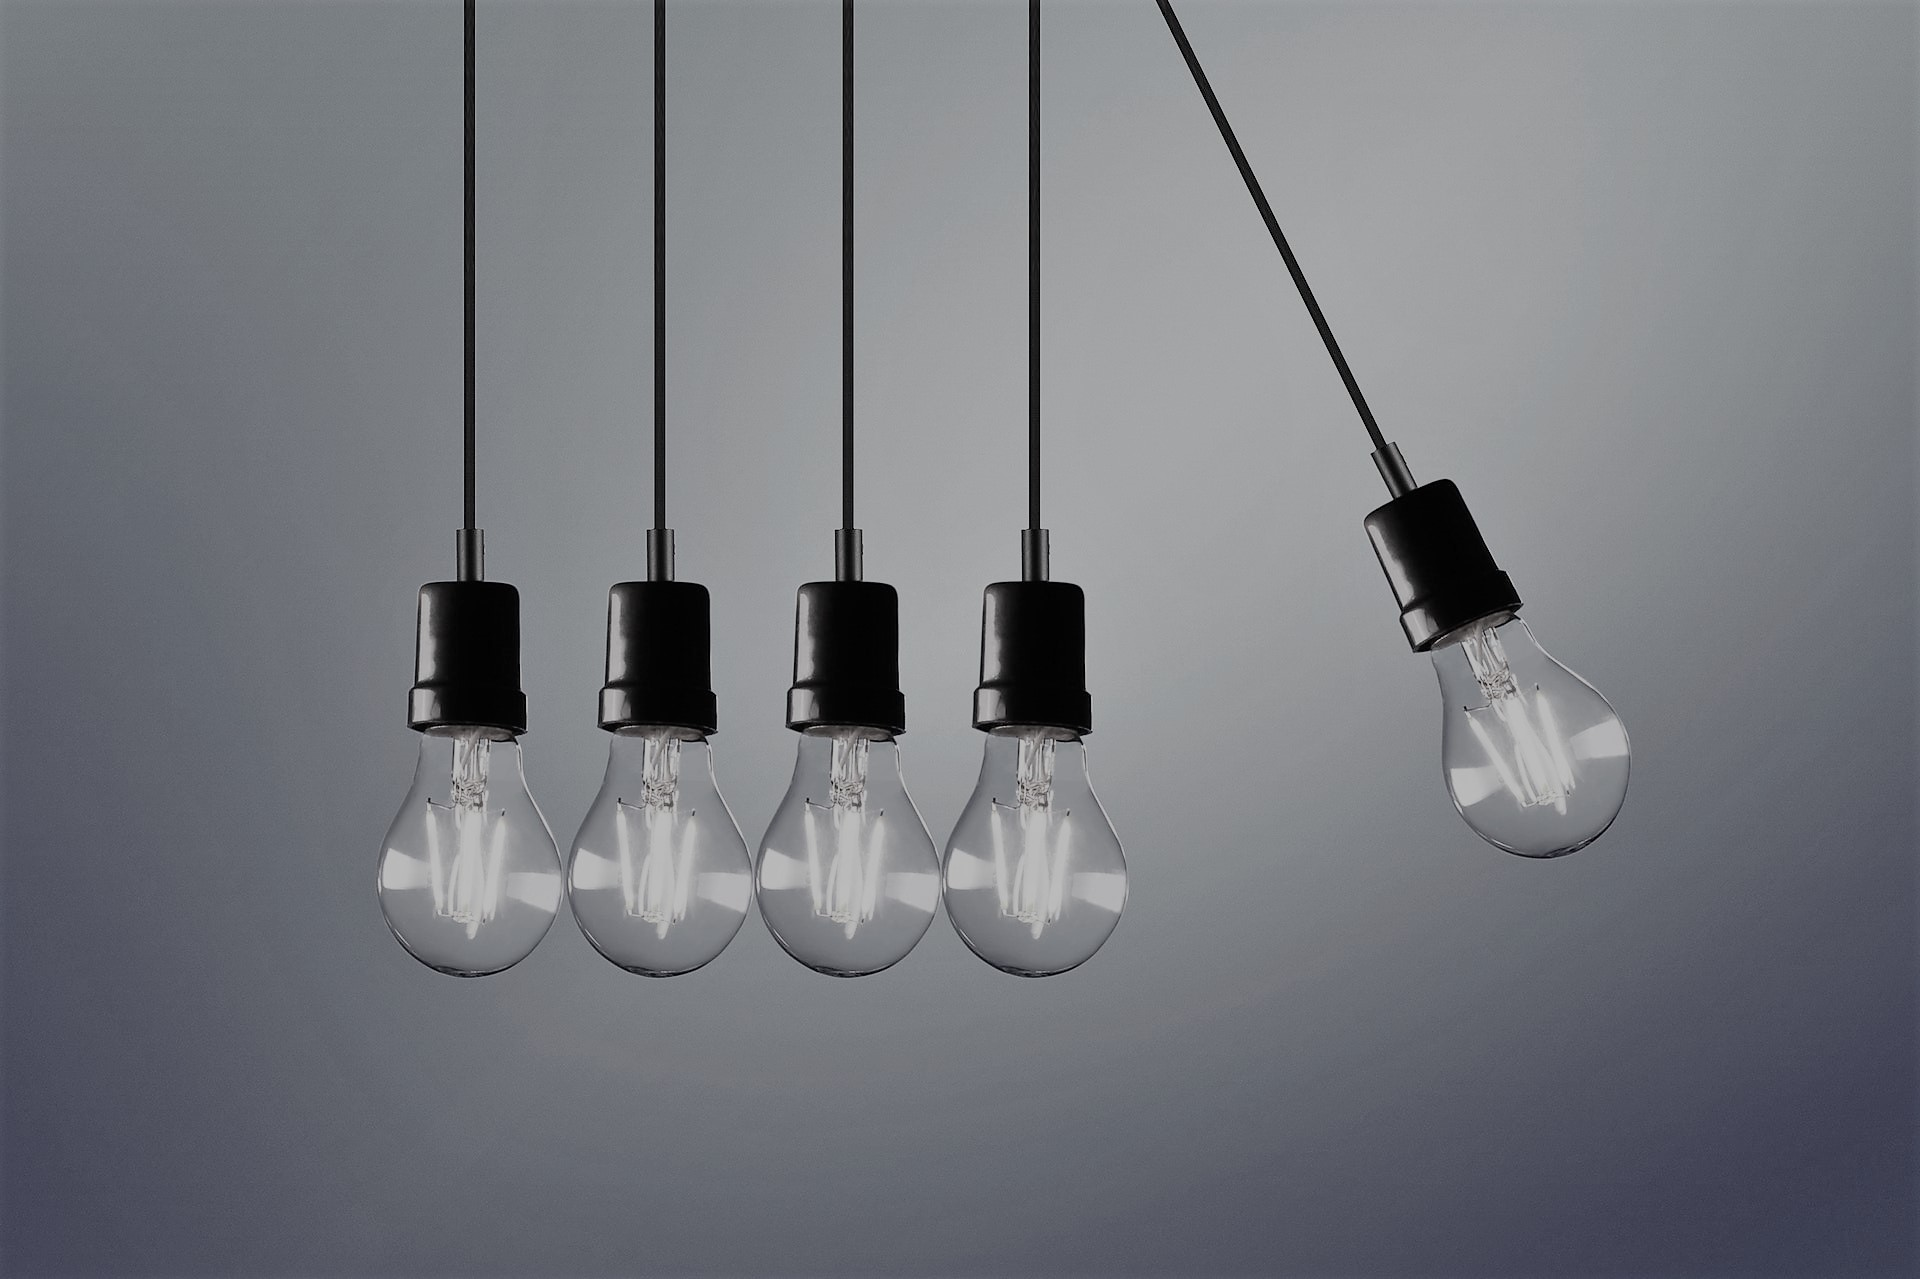 five light bulbs-open data